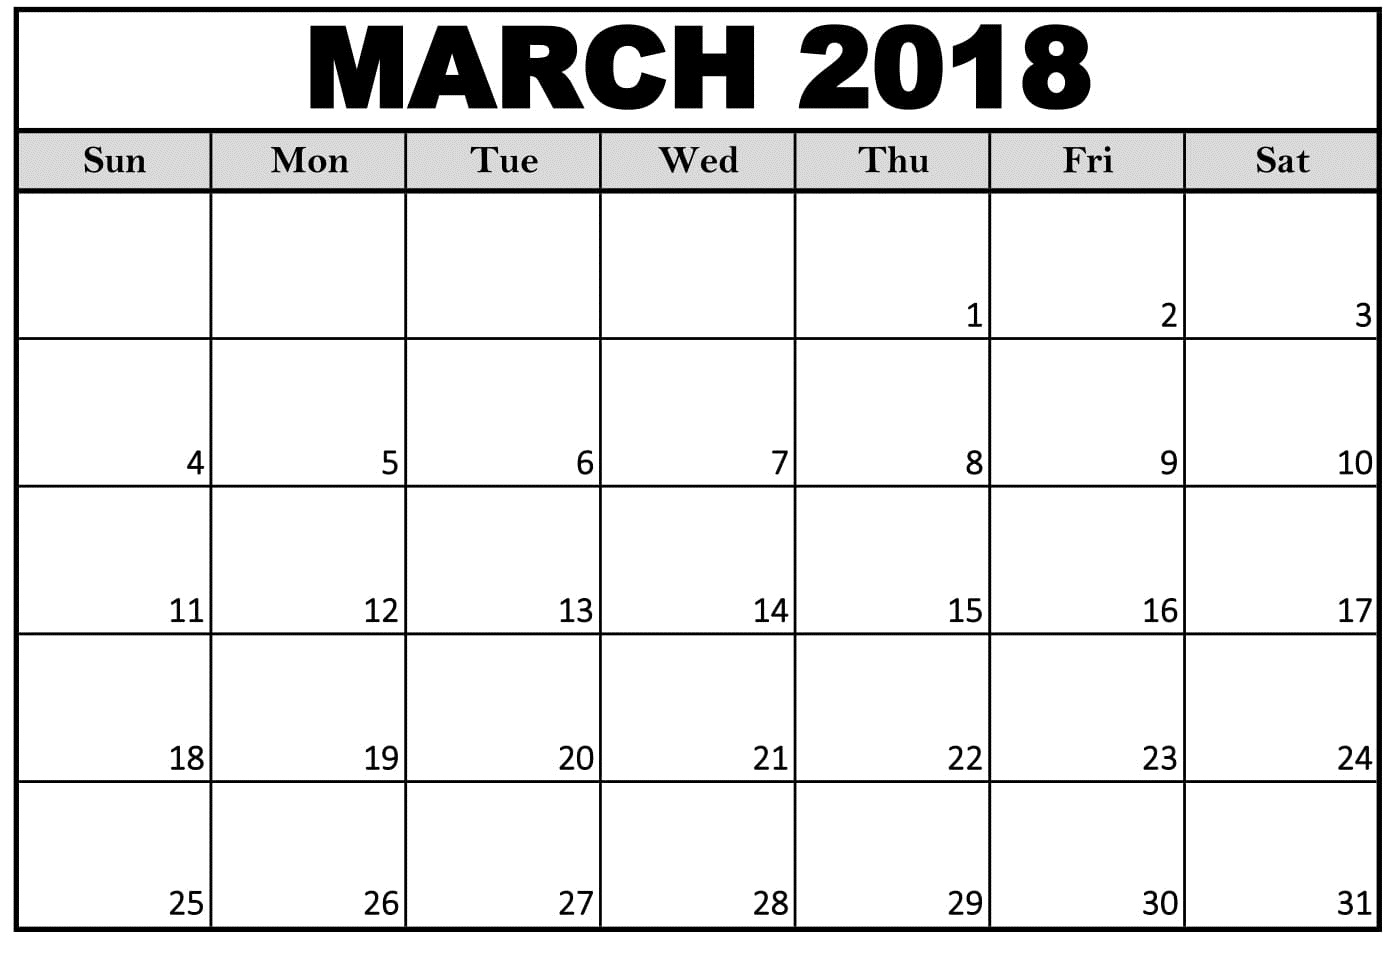 March 2018 Calendar Excel Template